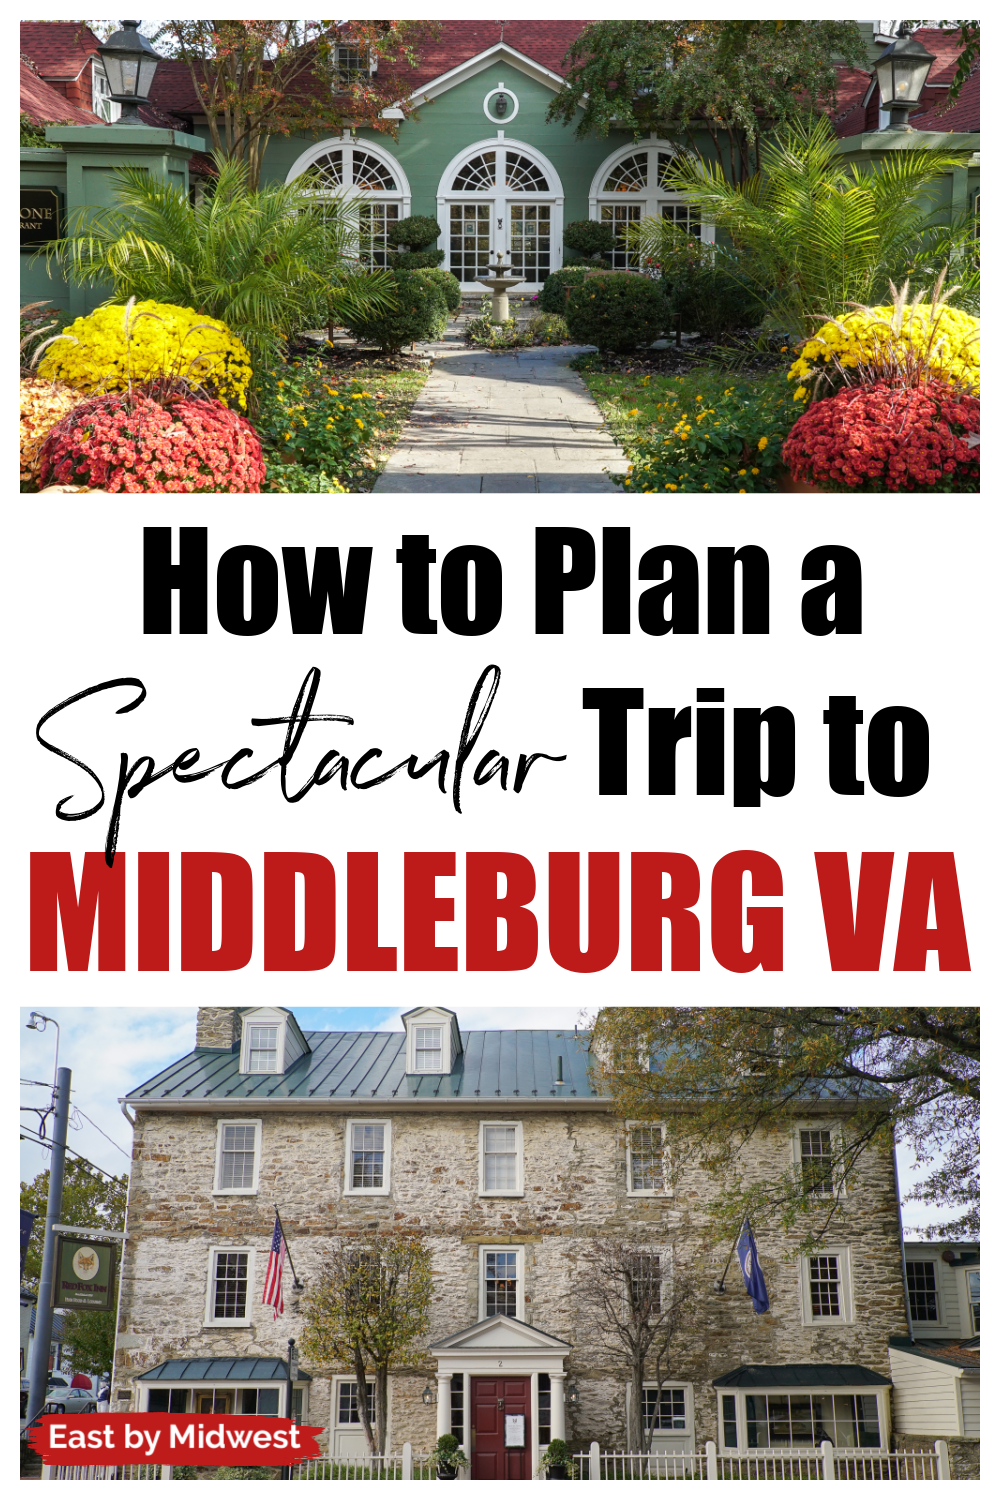 How to Plan a Spectacular Trip to Middleburg, Virginia